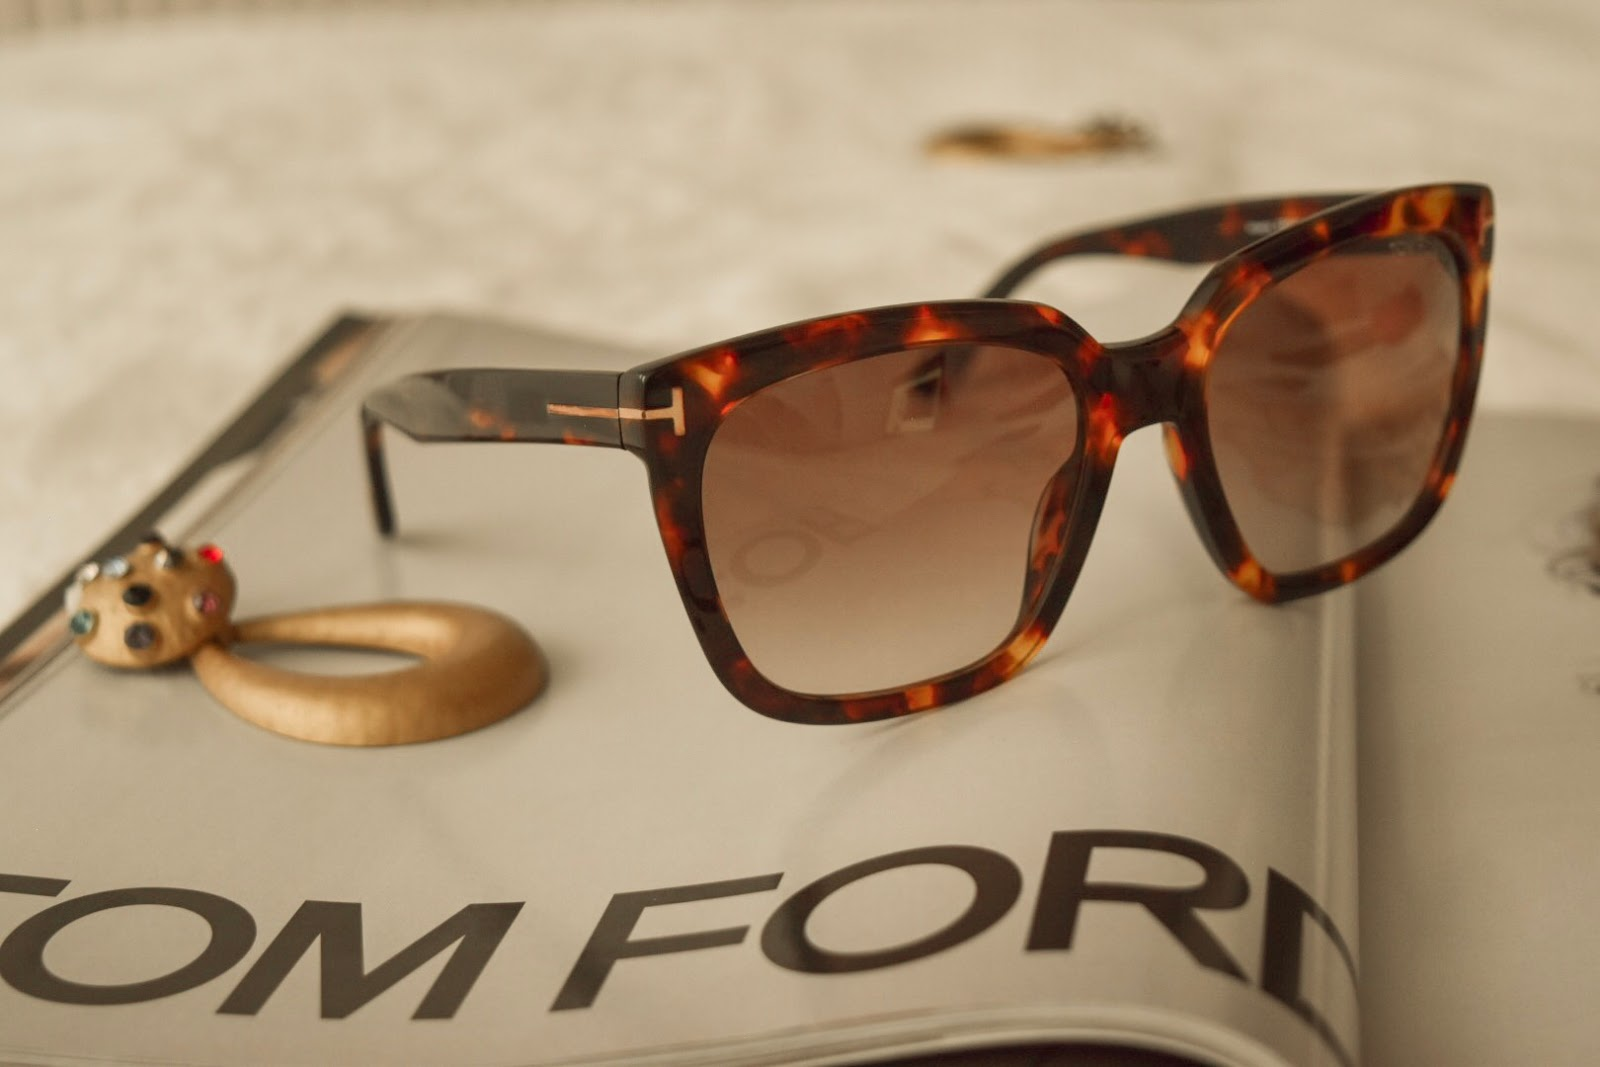 Tom Ford Amarra Sunglasses Review